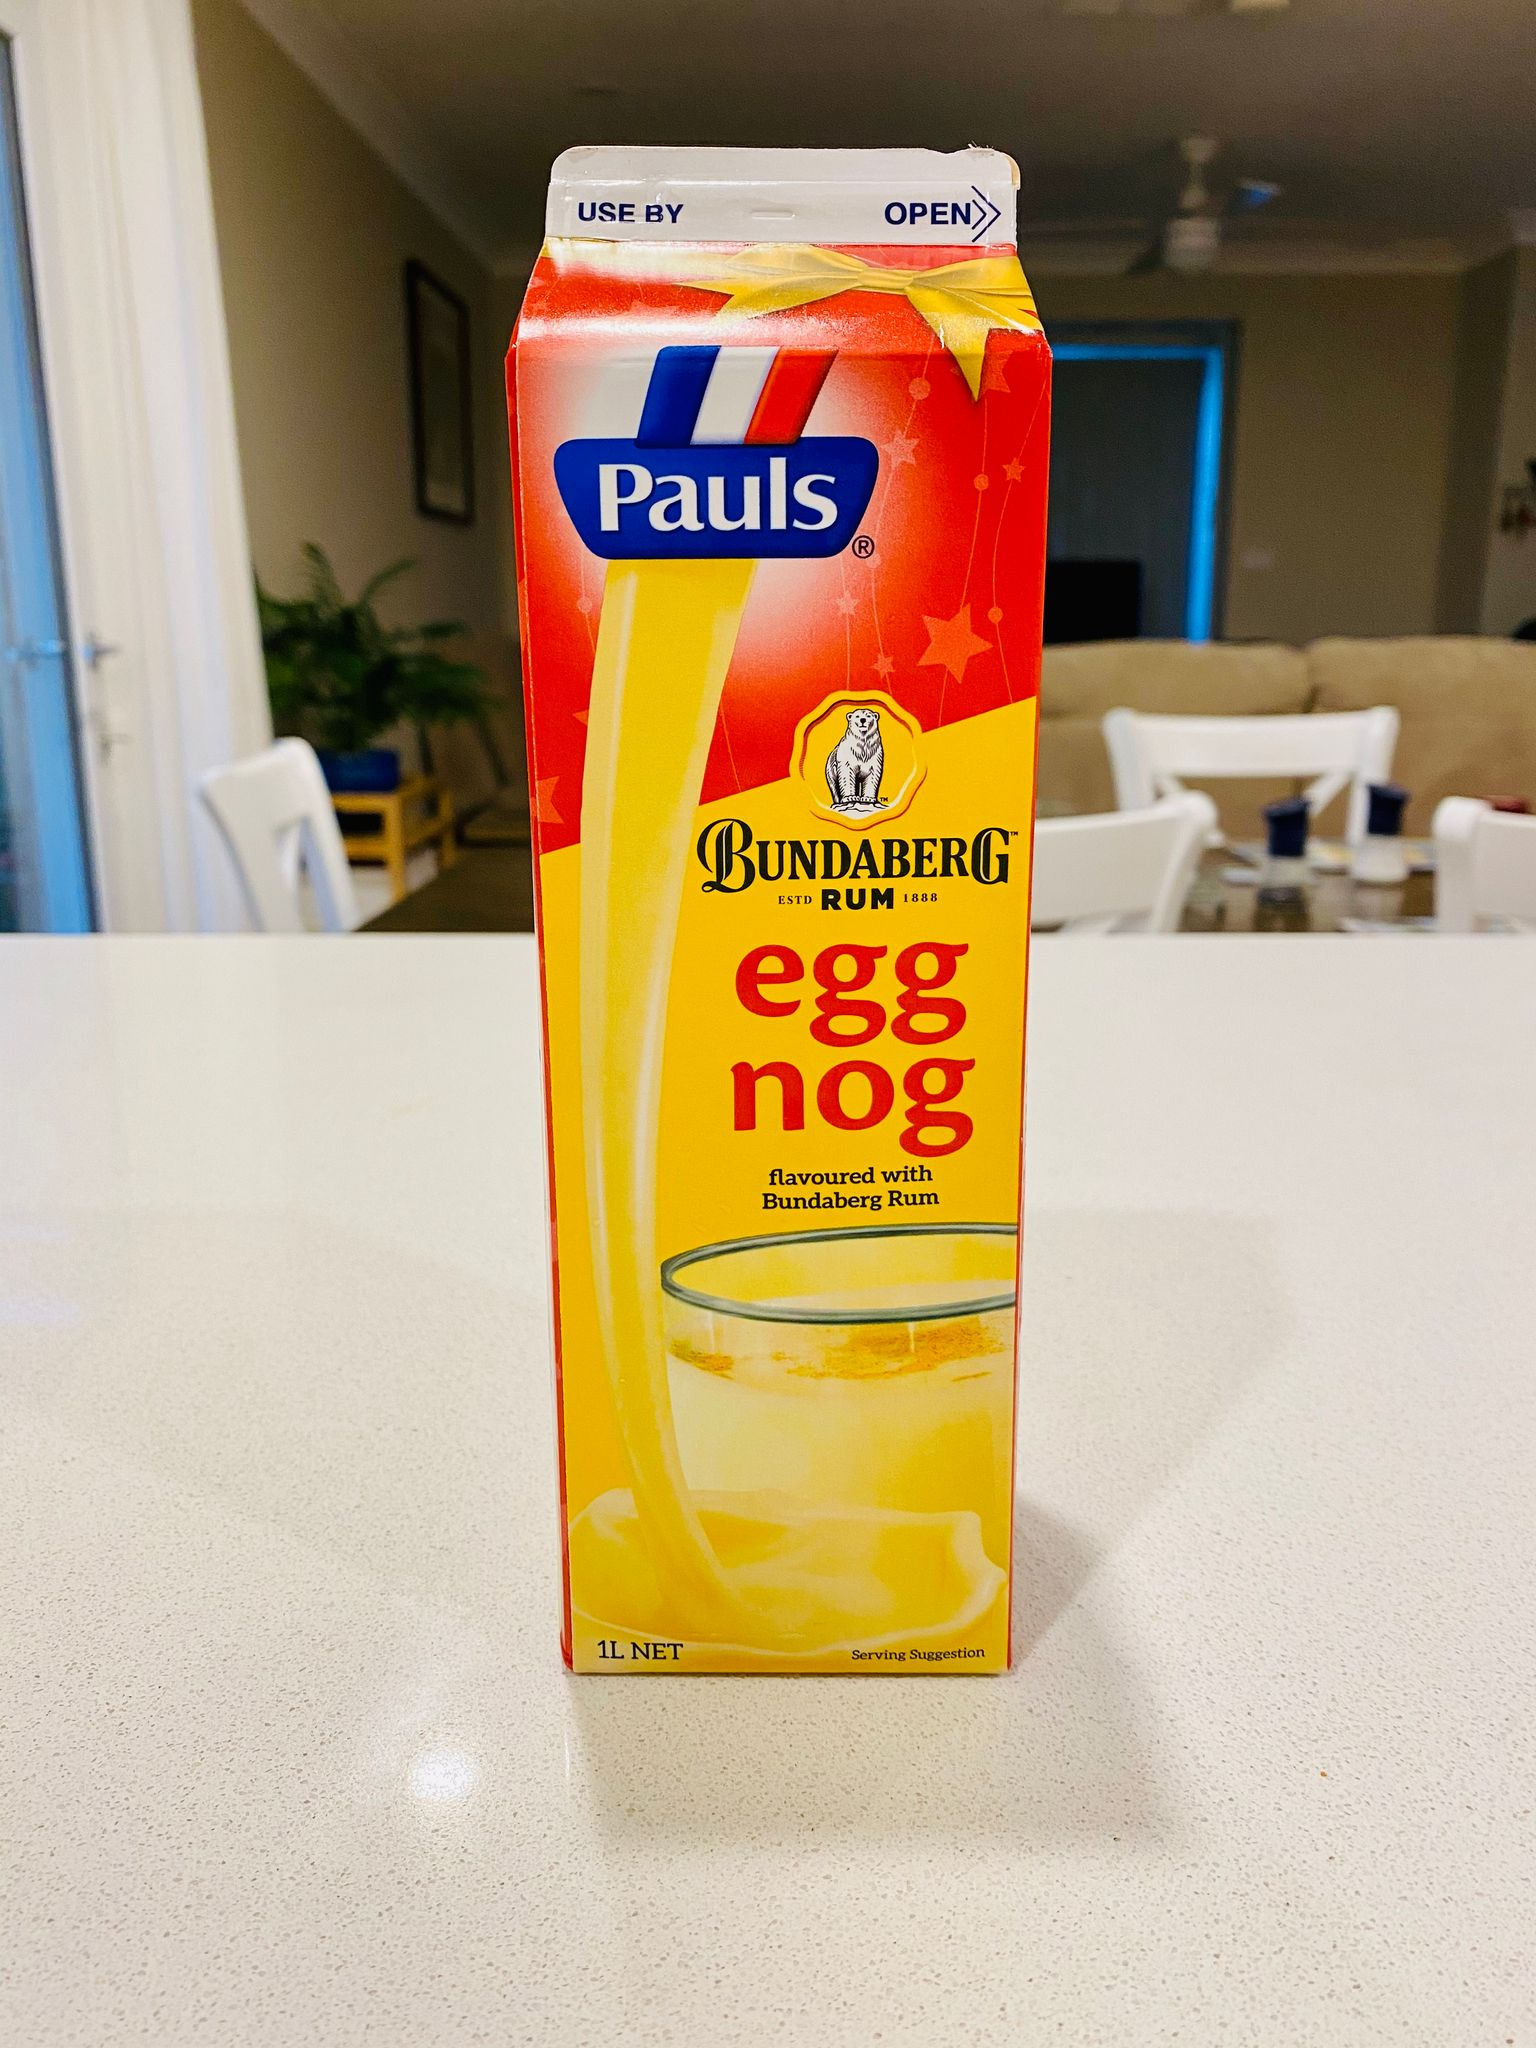 A photo of a carton of egg nog that says it's flavoured with Bundaberg rum.